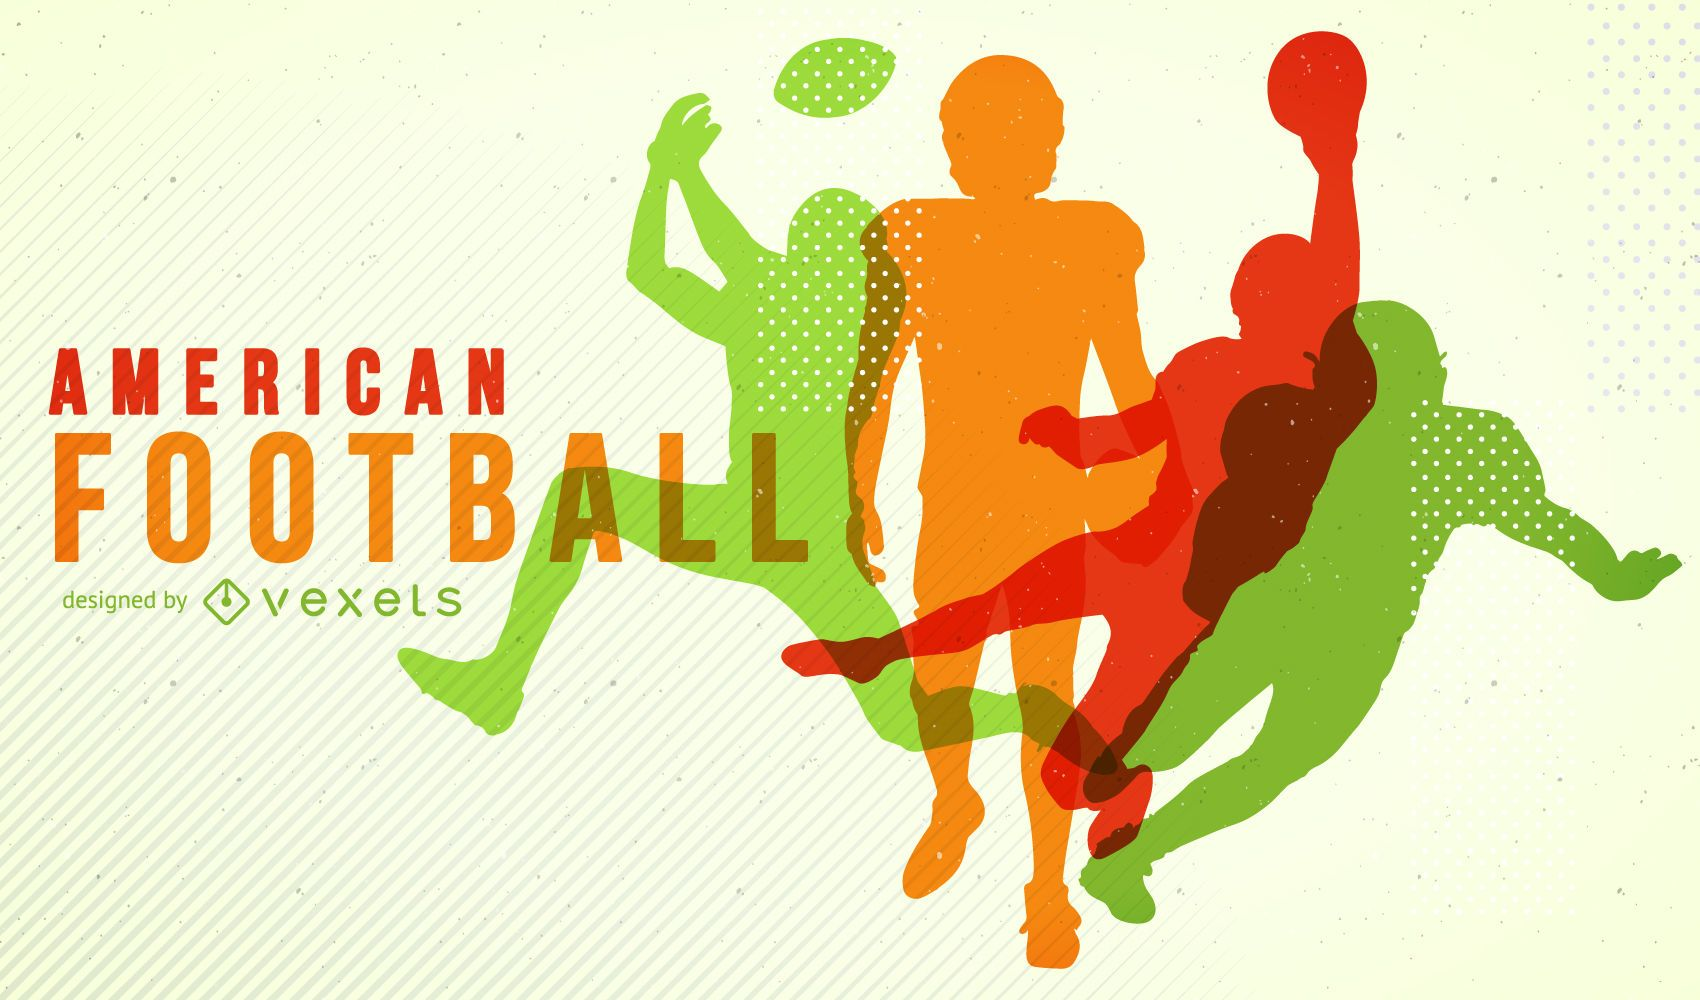 Colorful American Football silhouette poster